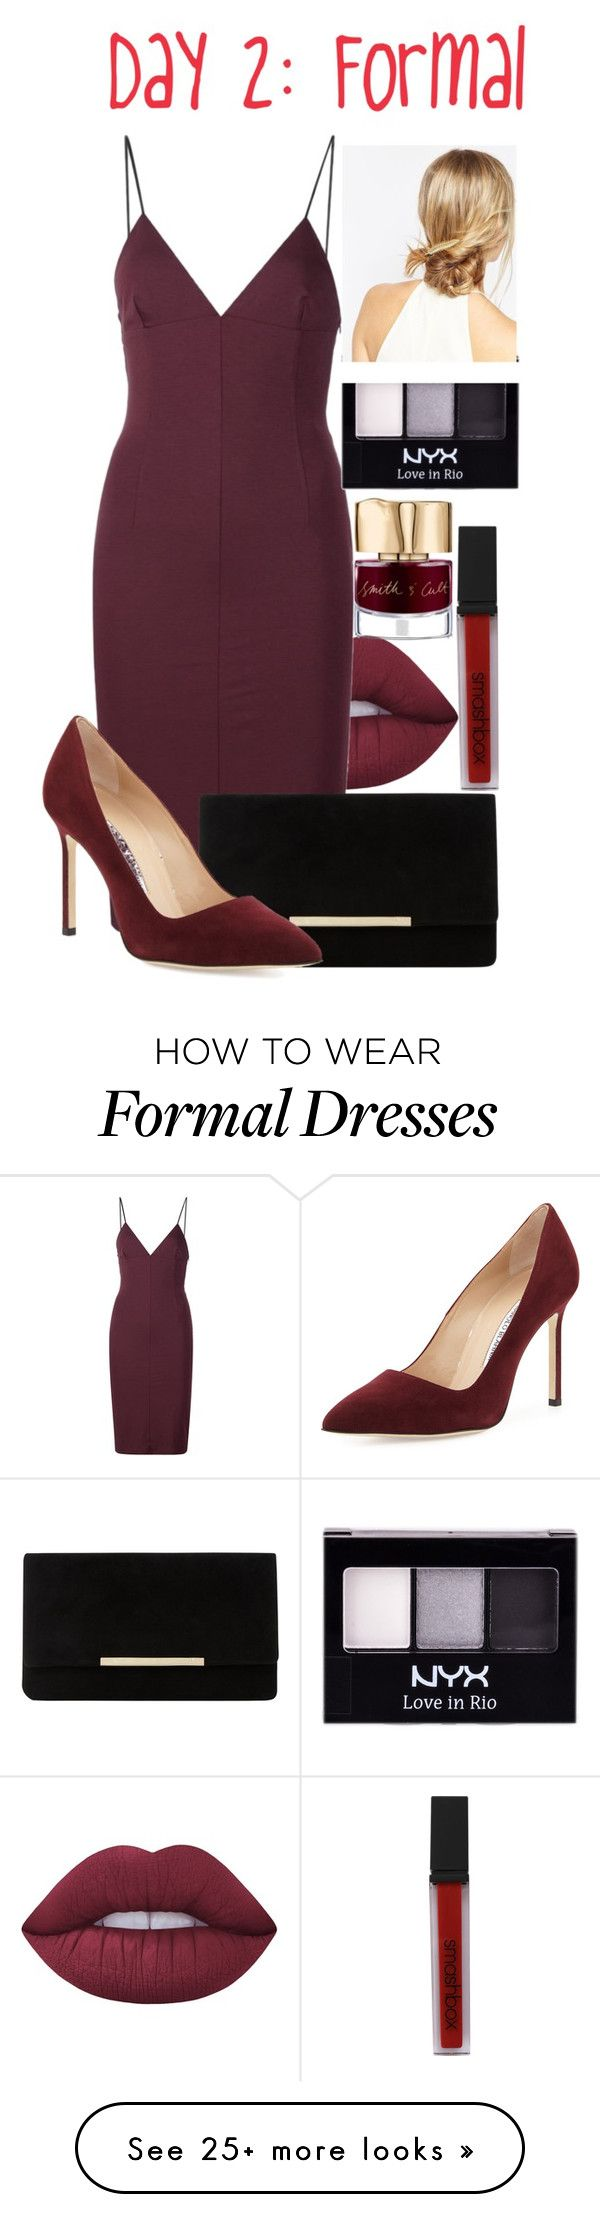 """""""Romance [Day 2: Formal] (Jade 015)"""" by peripri on Polyvore featuring Lime Crime, T By Alexander Wang, Dune, Manolo Blahnik, Smashbox, Smith & Cult, NYX and ASOS"""